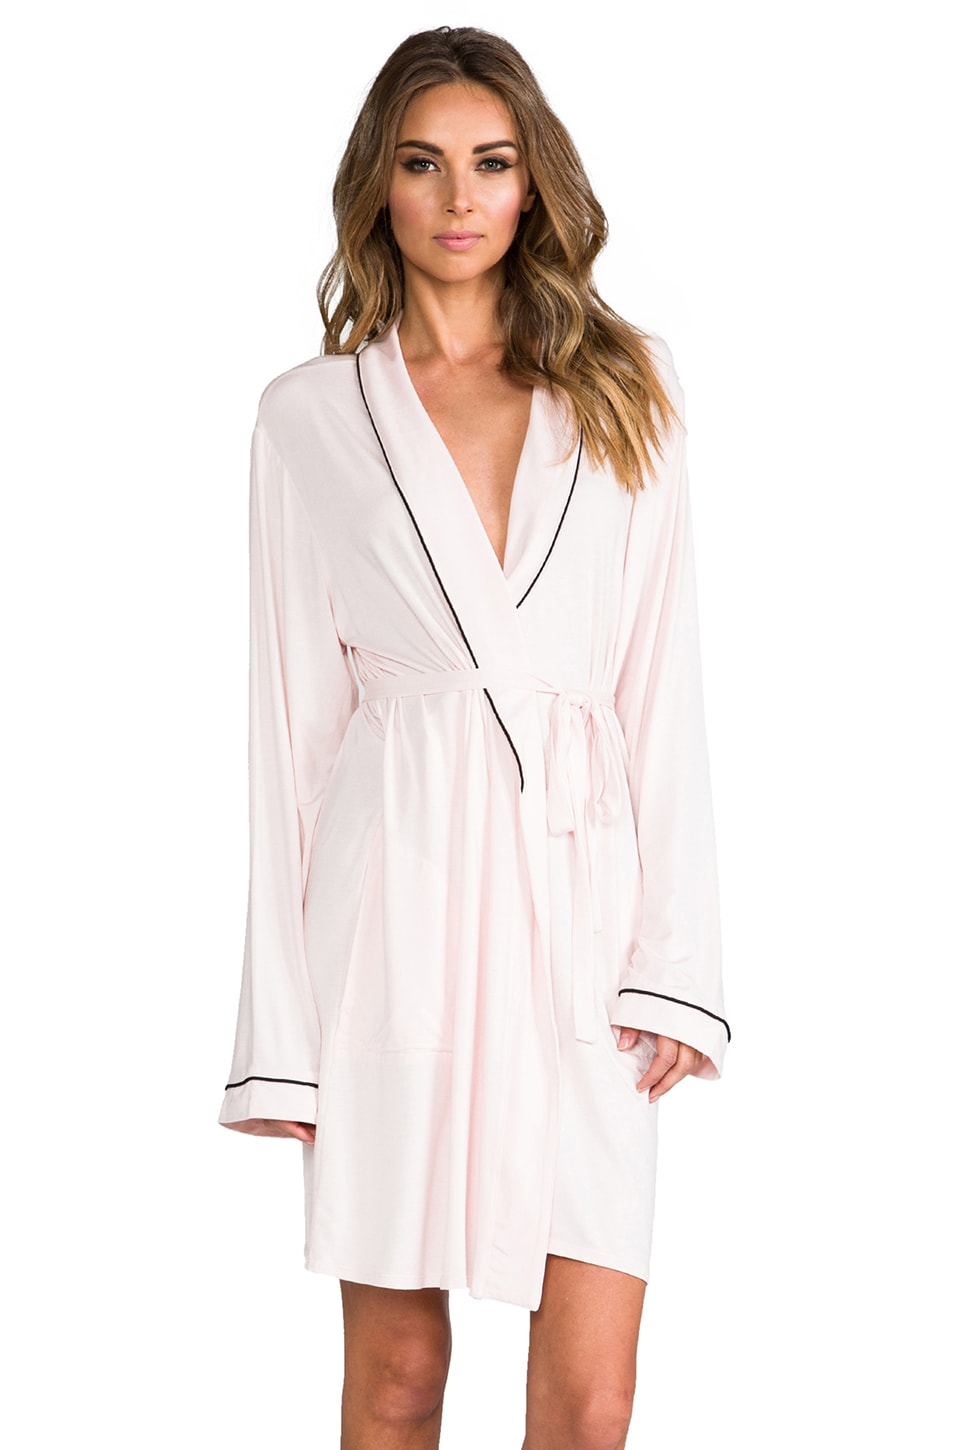 Wildfox Couture Never Get Dressed Robe in Pink